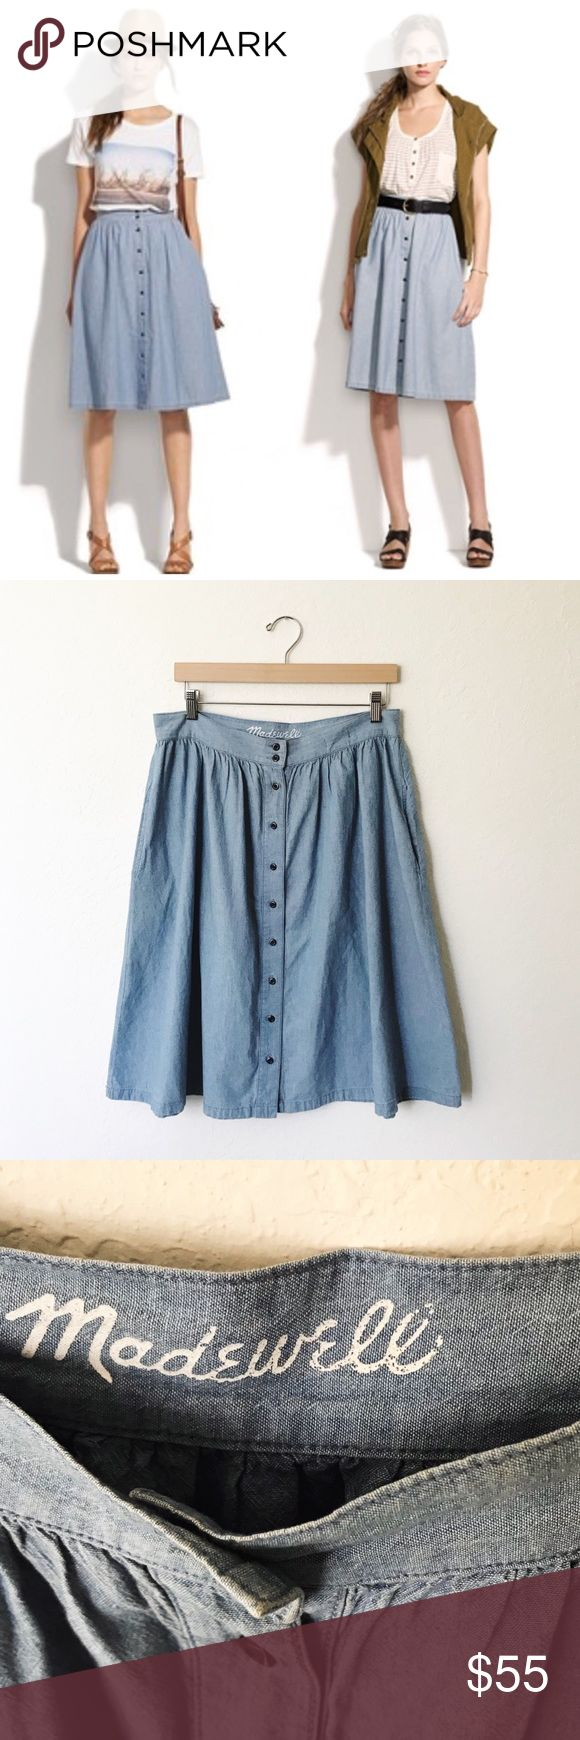 Madewell Chambray Sightseer Midi Skirt Knee length Midi button up Chambray Sightseer Skirt by Madewell. Excellent preowned condition, like new. Madewell Skirts Midi